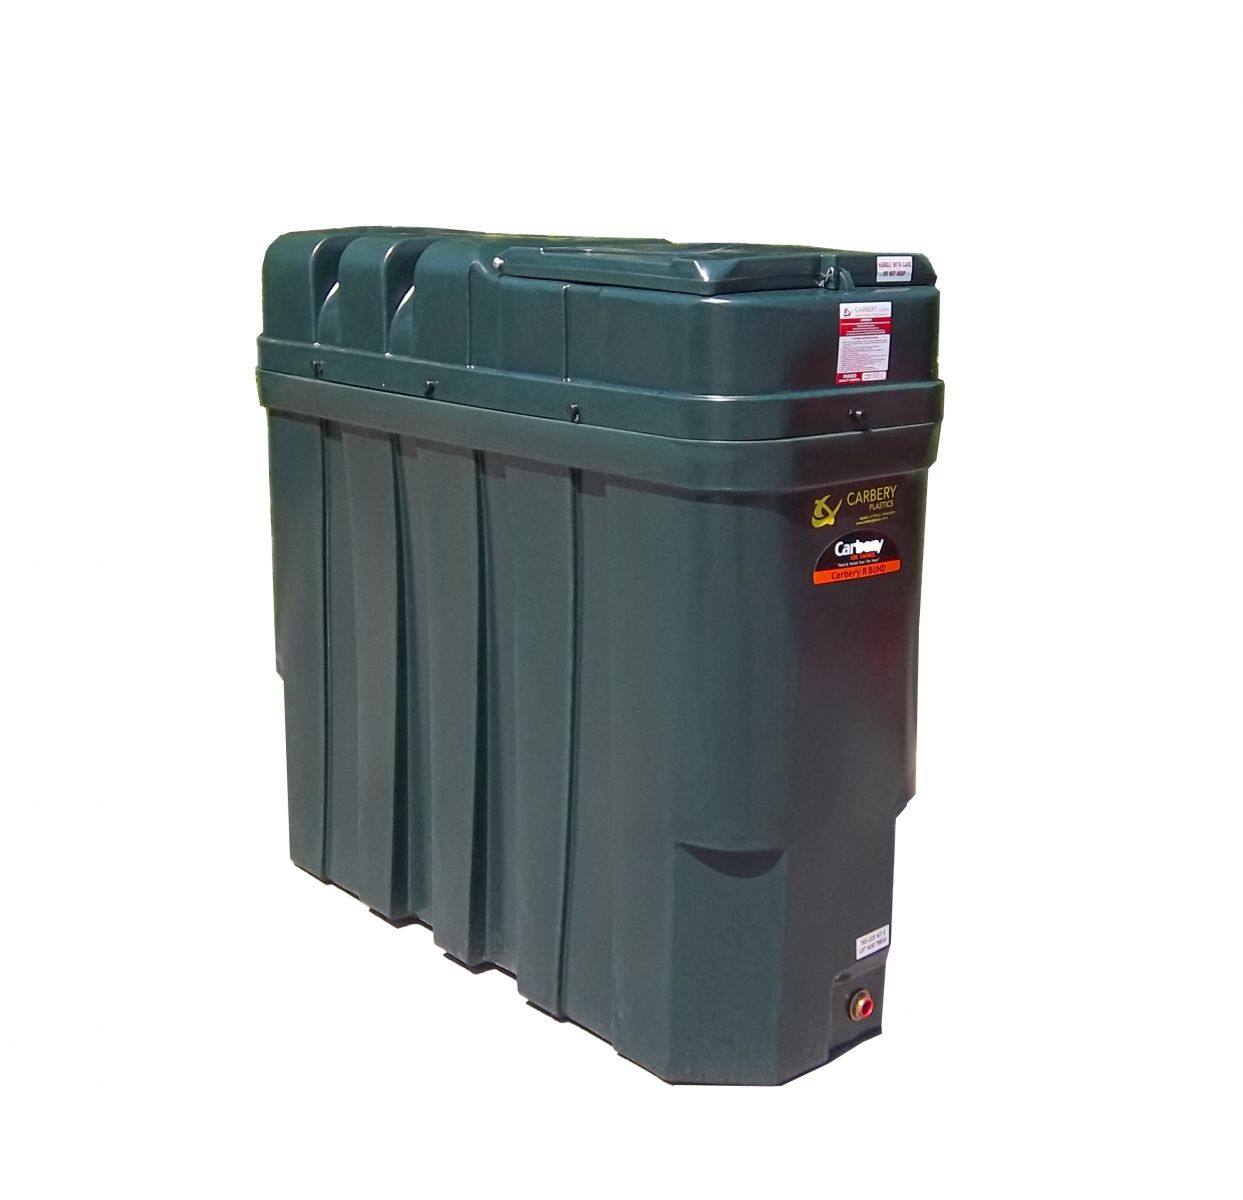 Carbery 1000SB Superslim Bunded Oil Tank